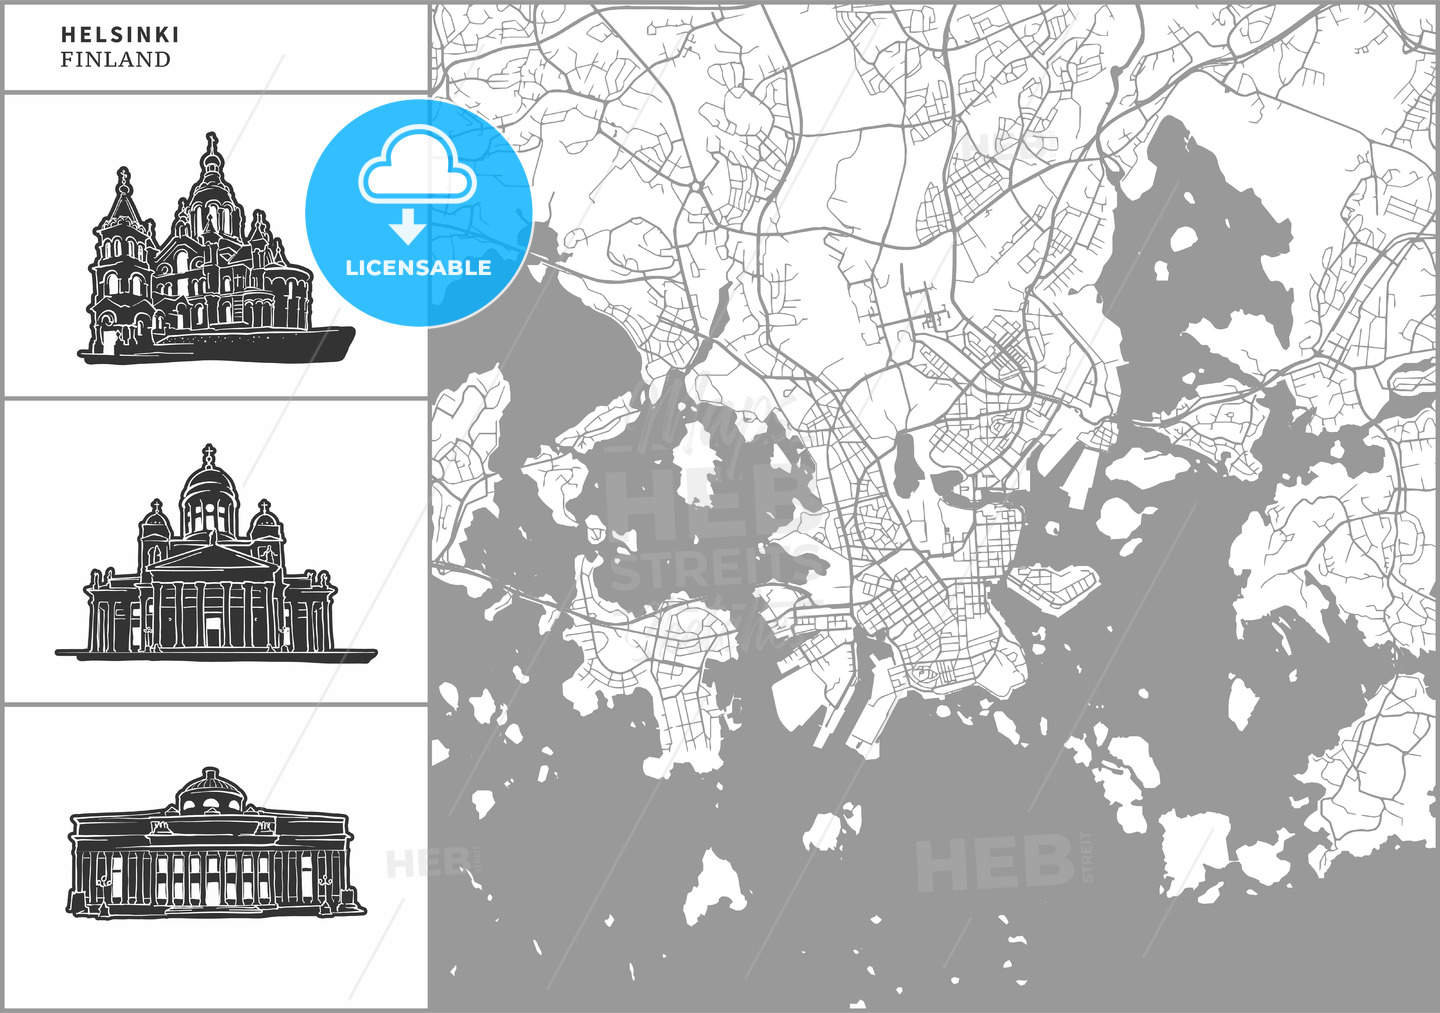 Helsinki city map with hand-drawn architecture icons - HEBSTREITS